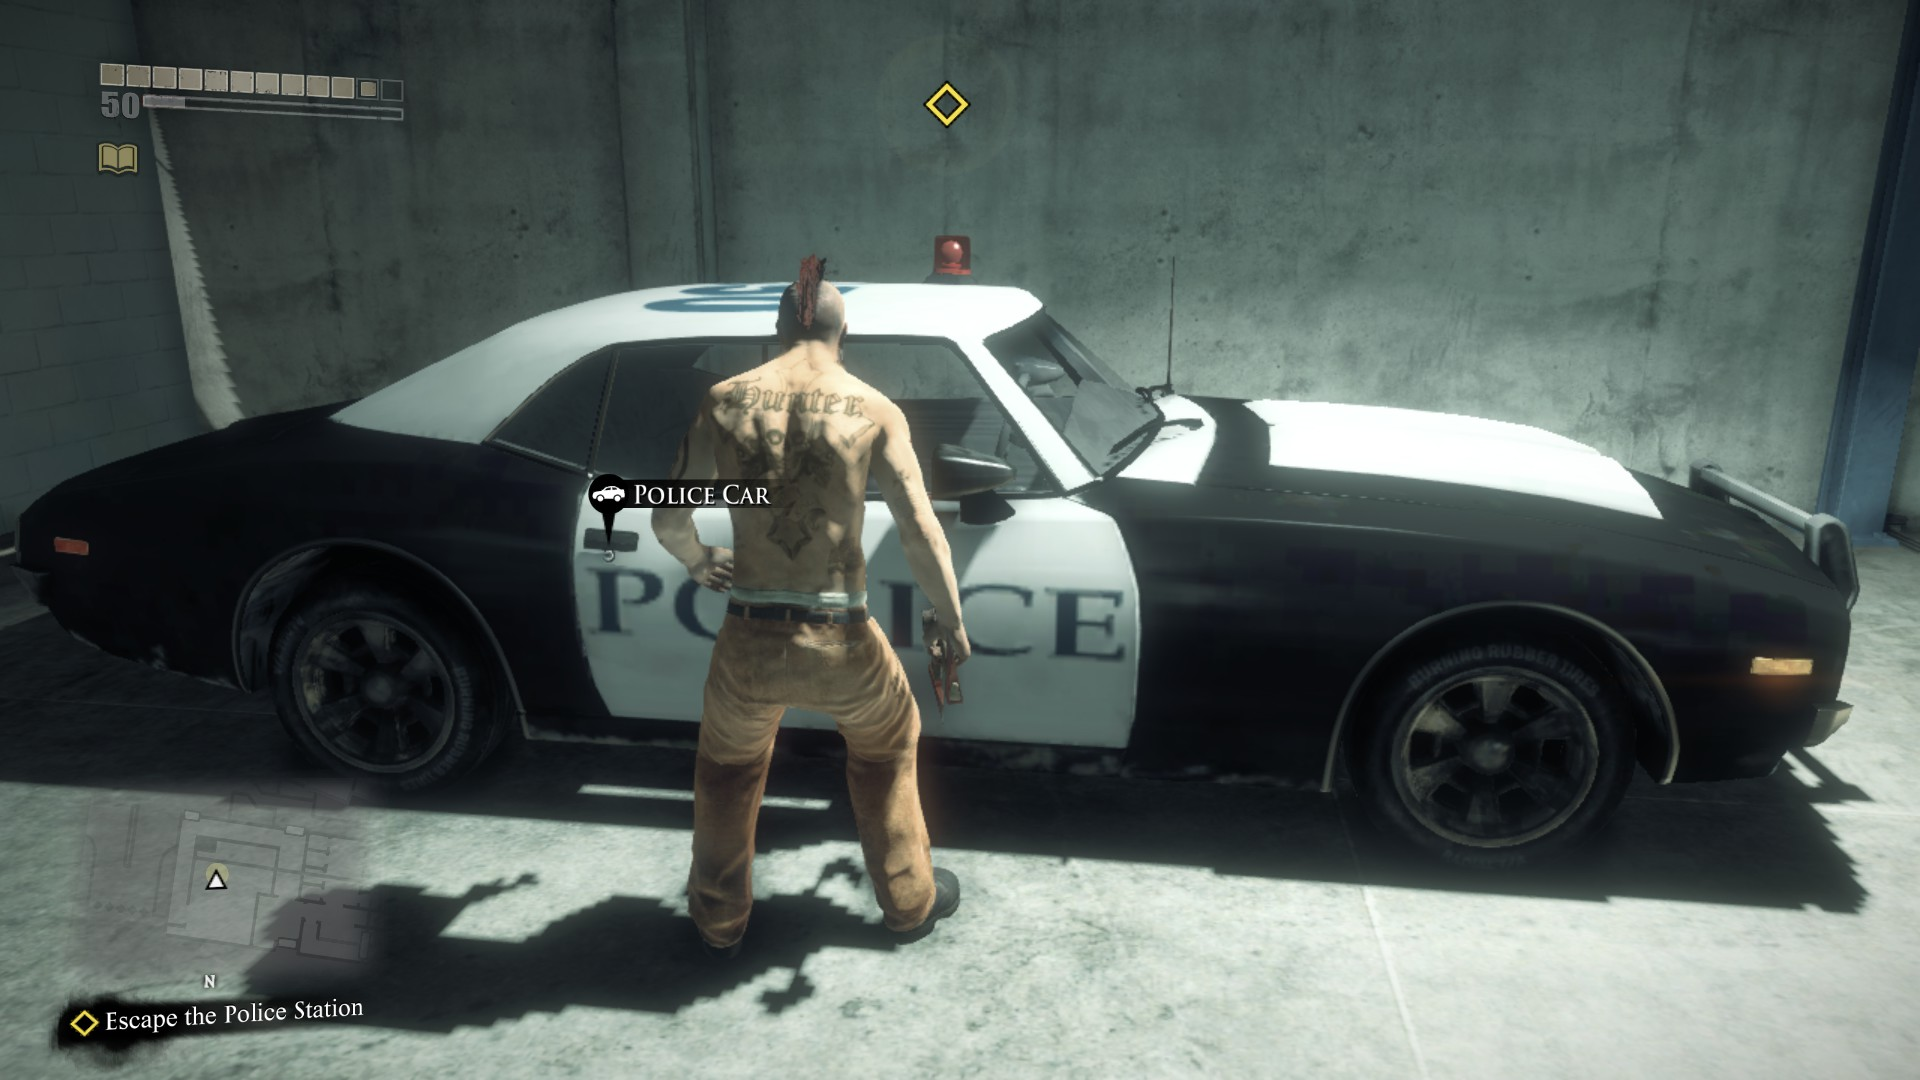 Escape the Police Station